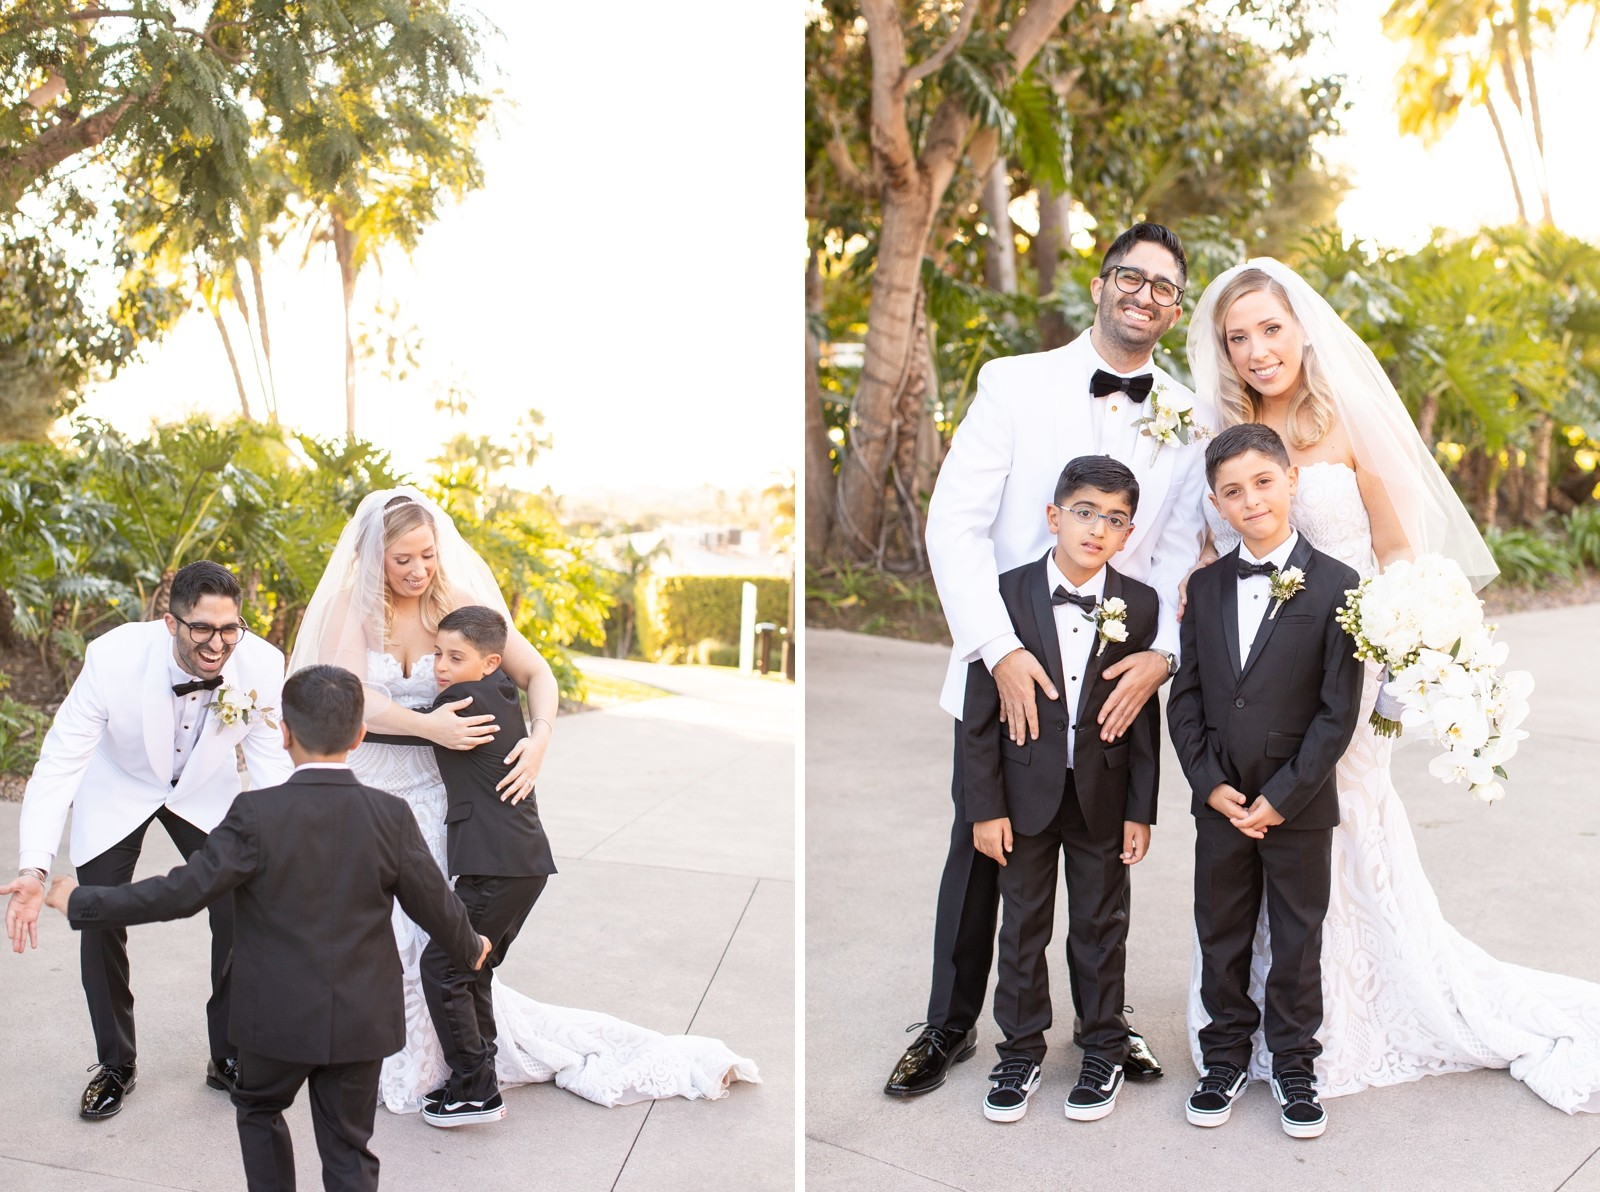 First Look with ring bearers